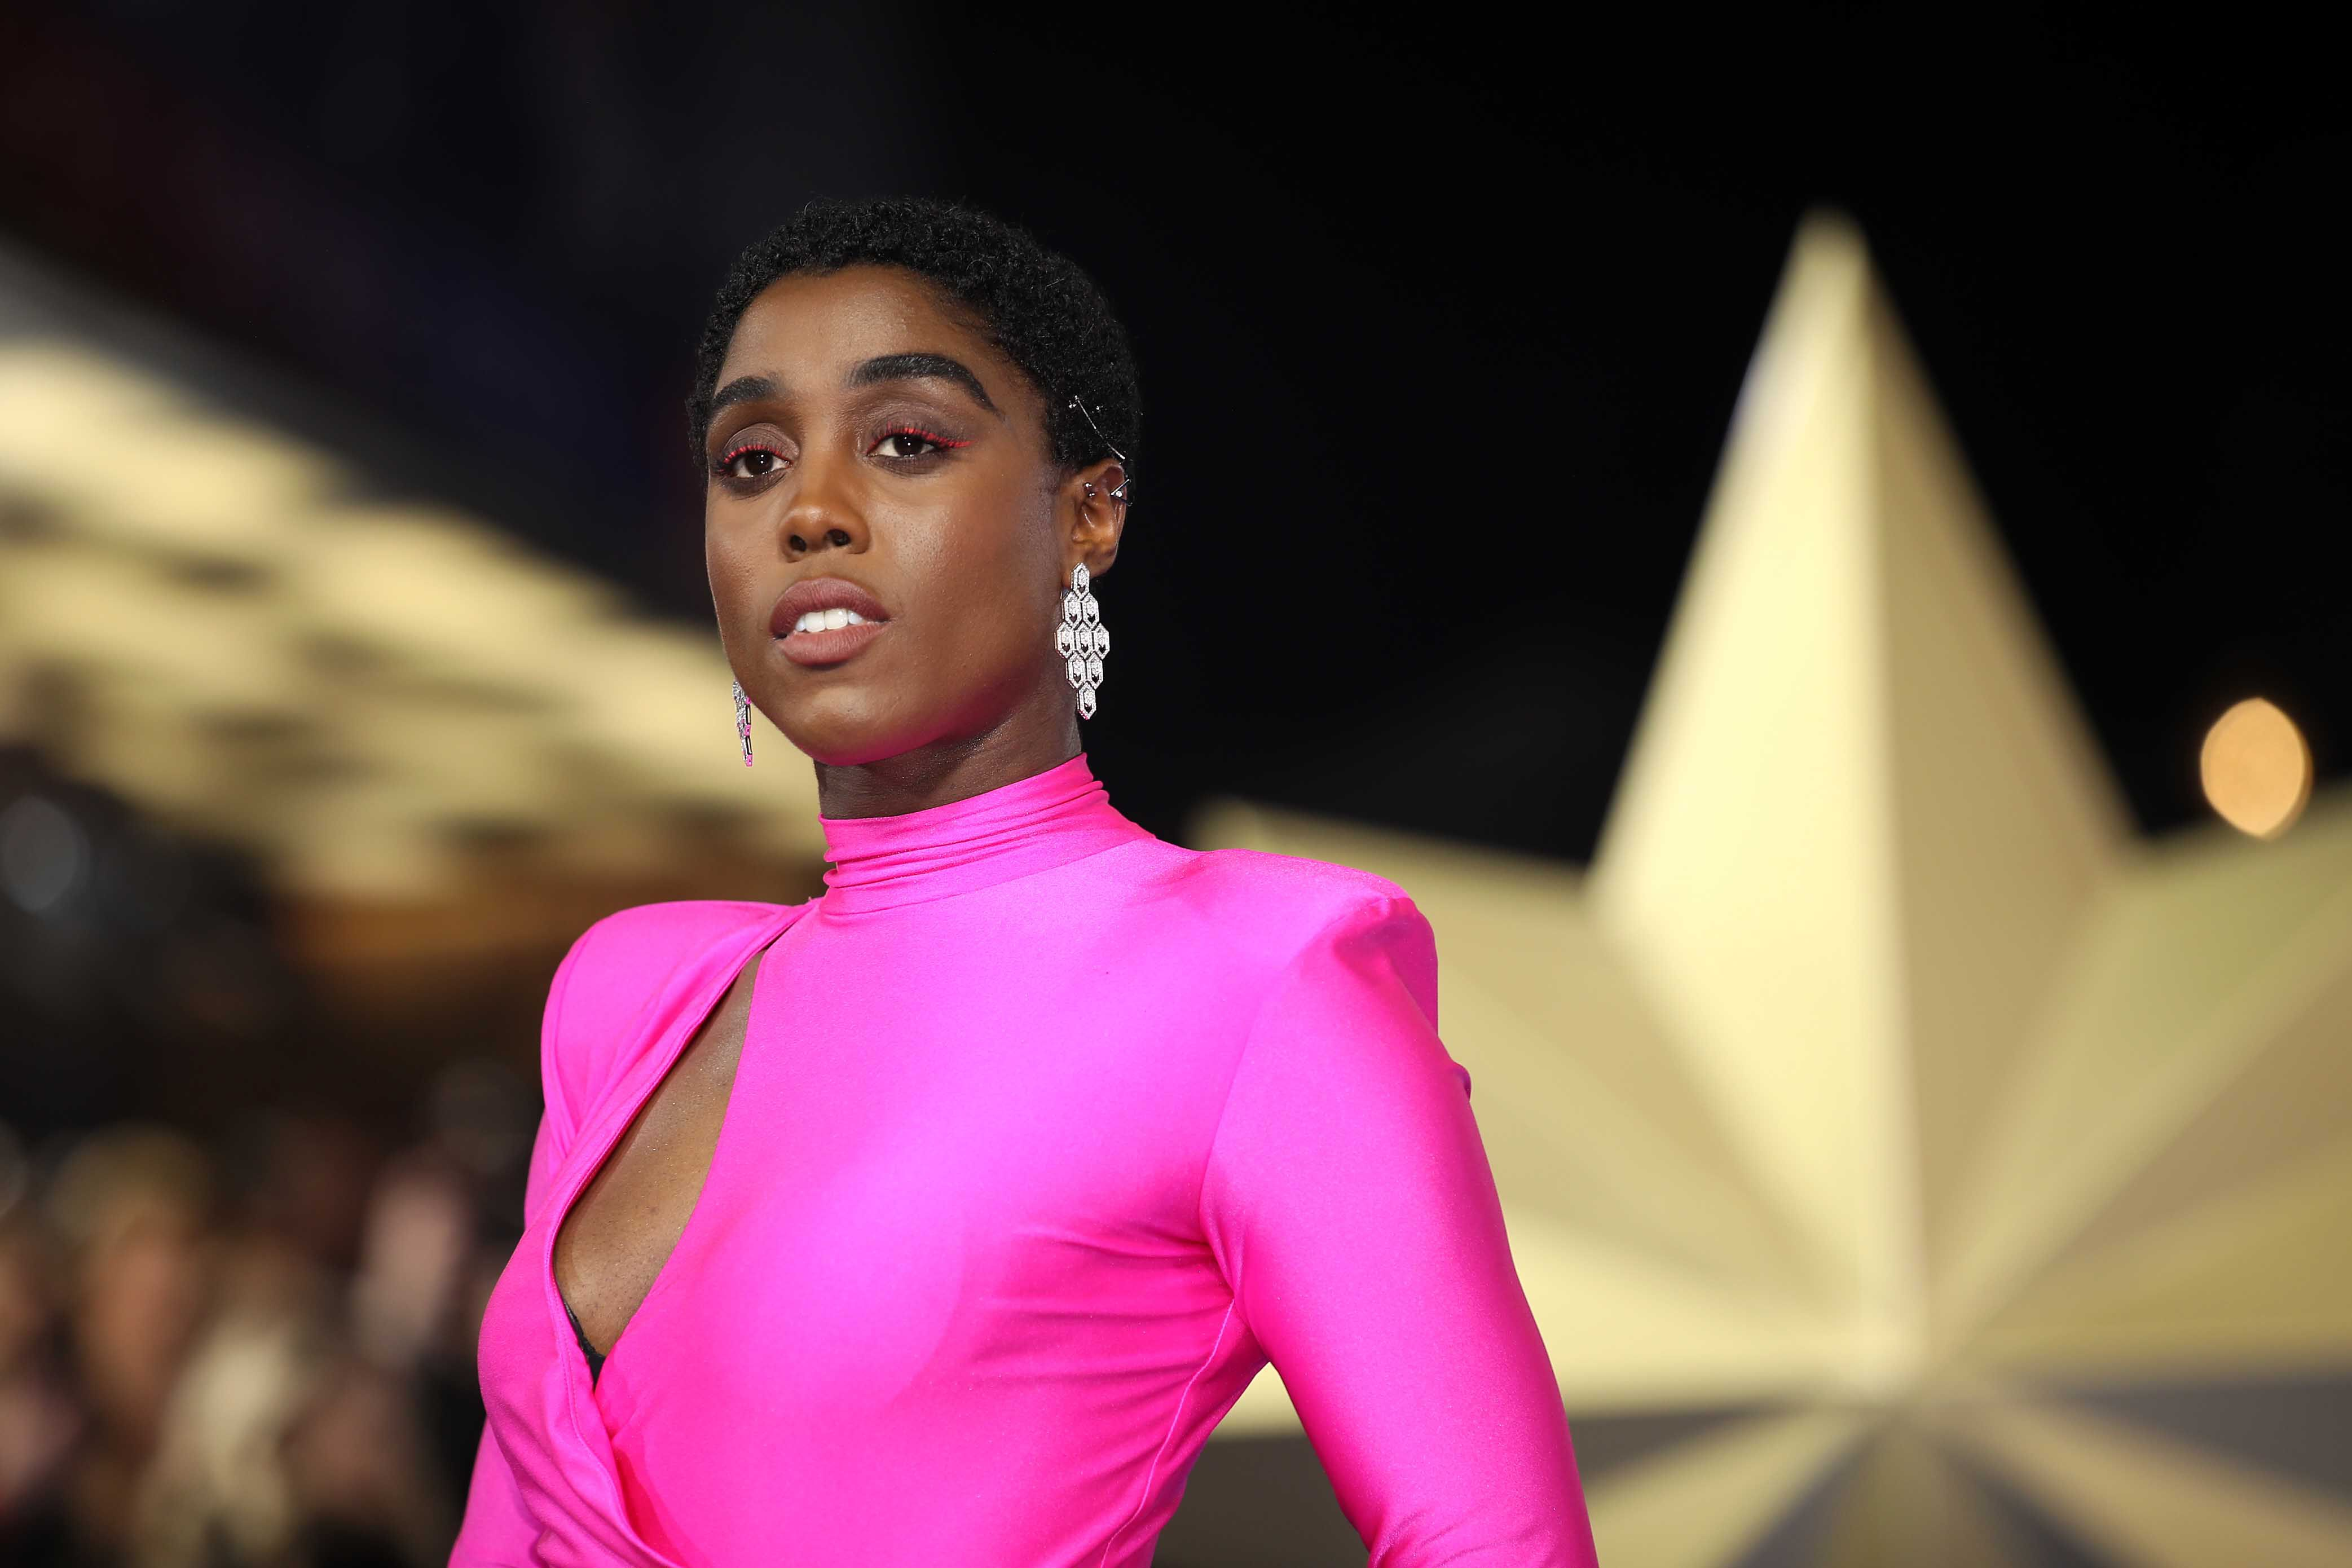 lashana-lynch-attends-the-captain-marvel-european-gala-held-news-photo-1132570261-1563121944